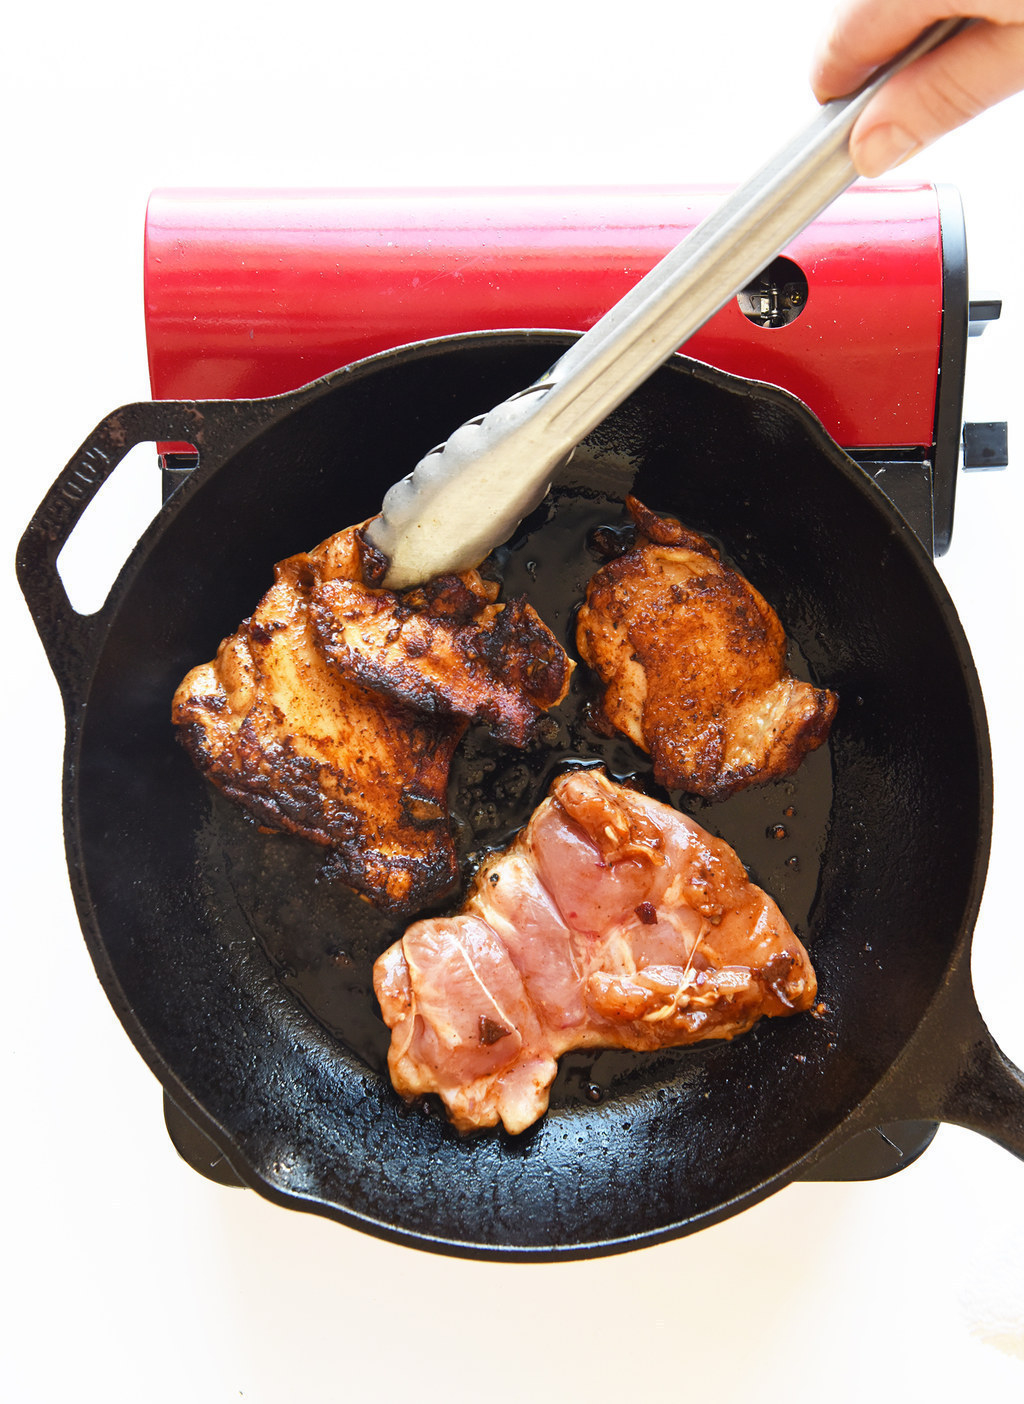 A cast iron pan with three caramelized chicken thighs